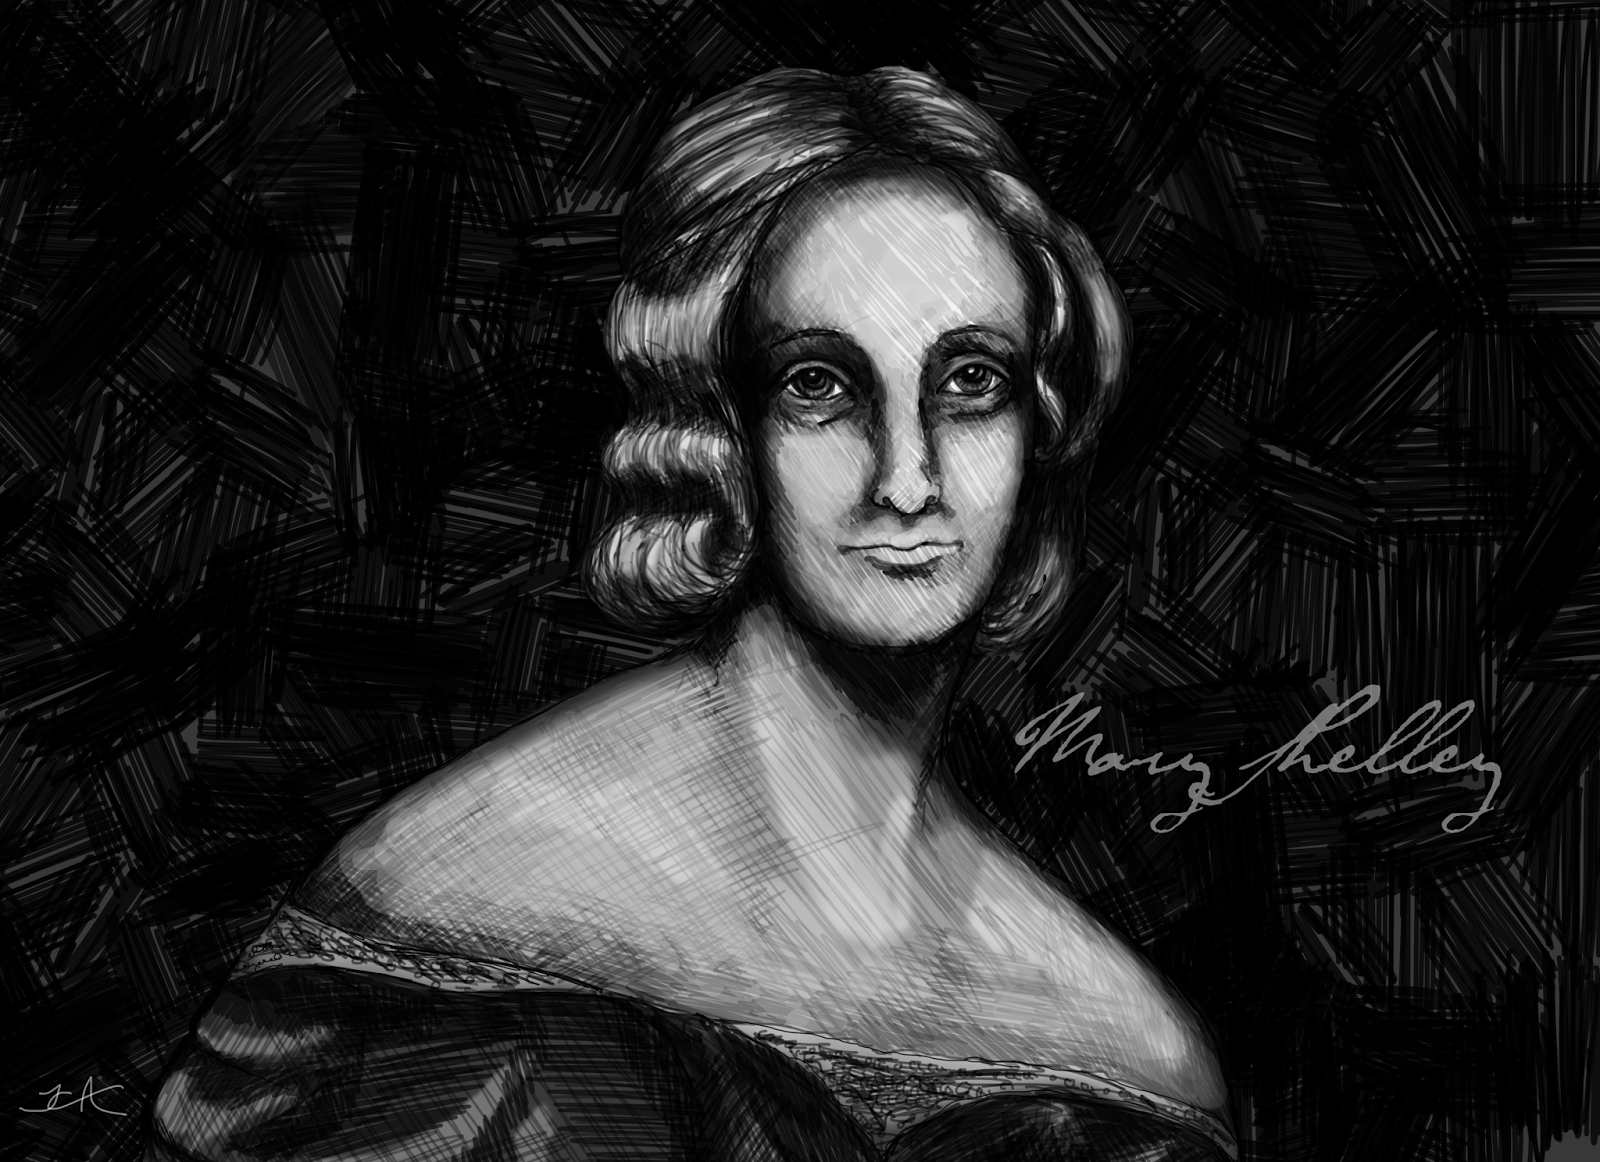 a biography of mary shelley a gothic author Information on mary shelley  written by a teenage girl, frankenstein is one of  literature's greatest gothic horror stories  five seminal science fiction classics  are brought vividly to life in these gripping bbc radio dramatisations, with casts .